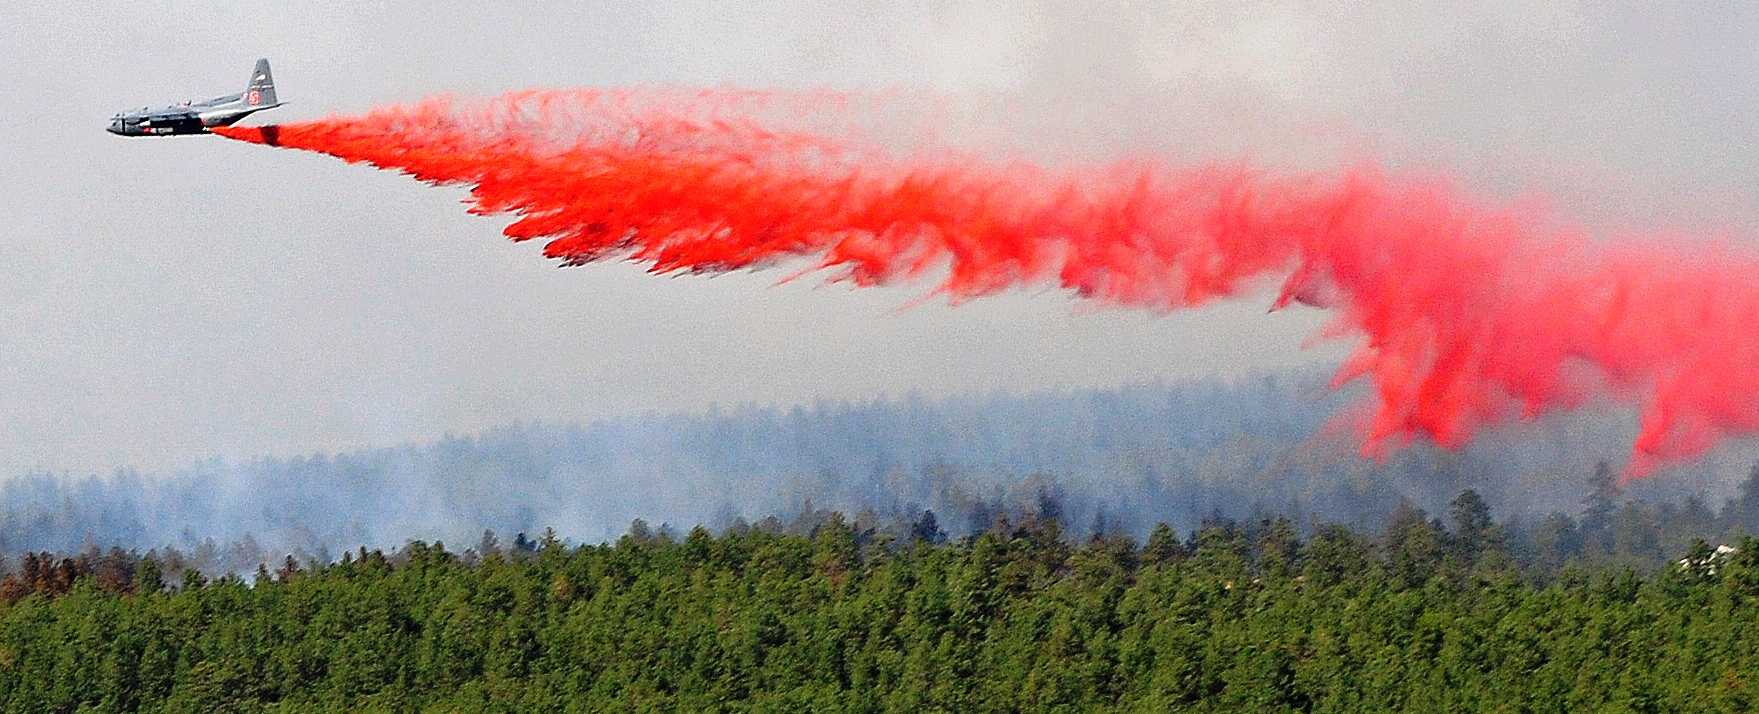 MAFFS C-130 drops retardant on the Black Forest Fire